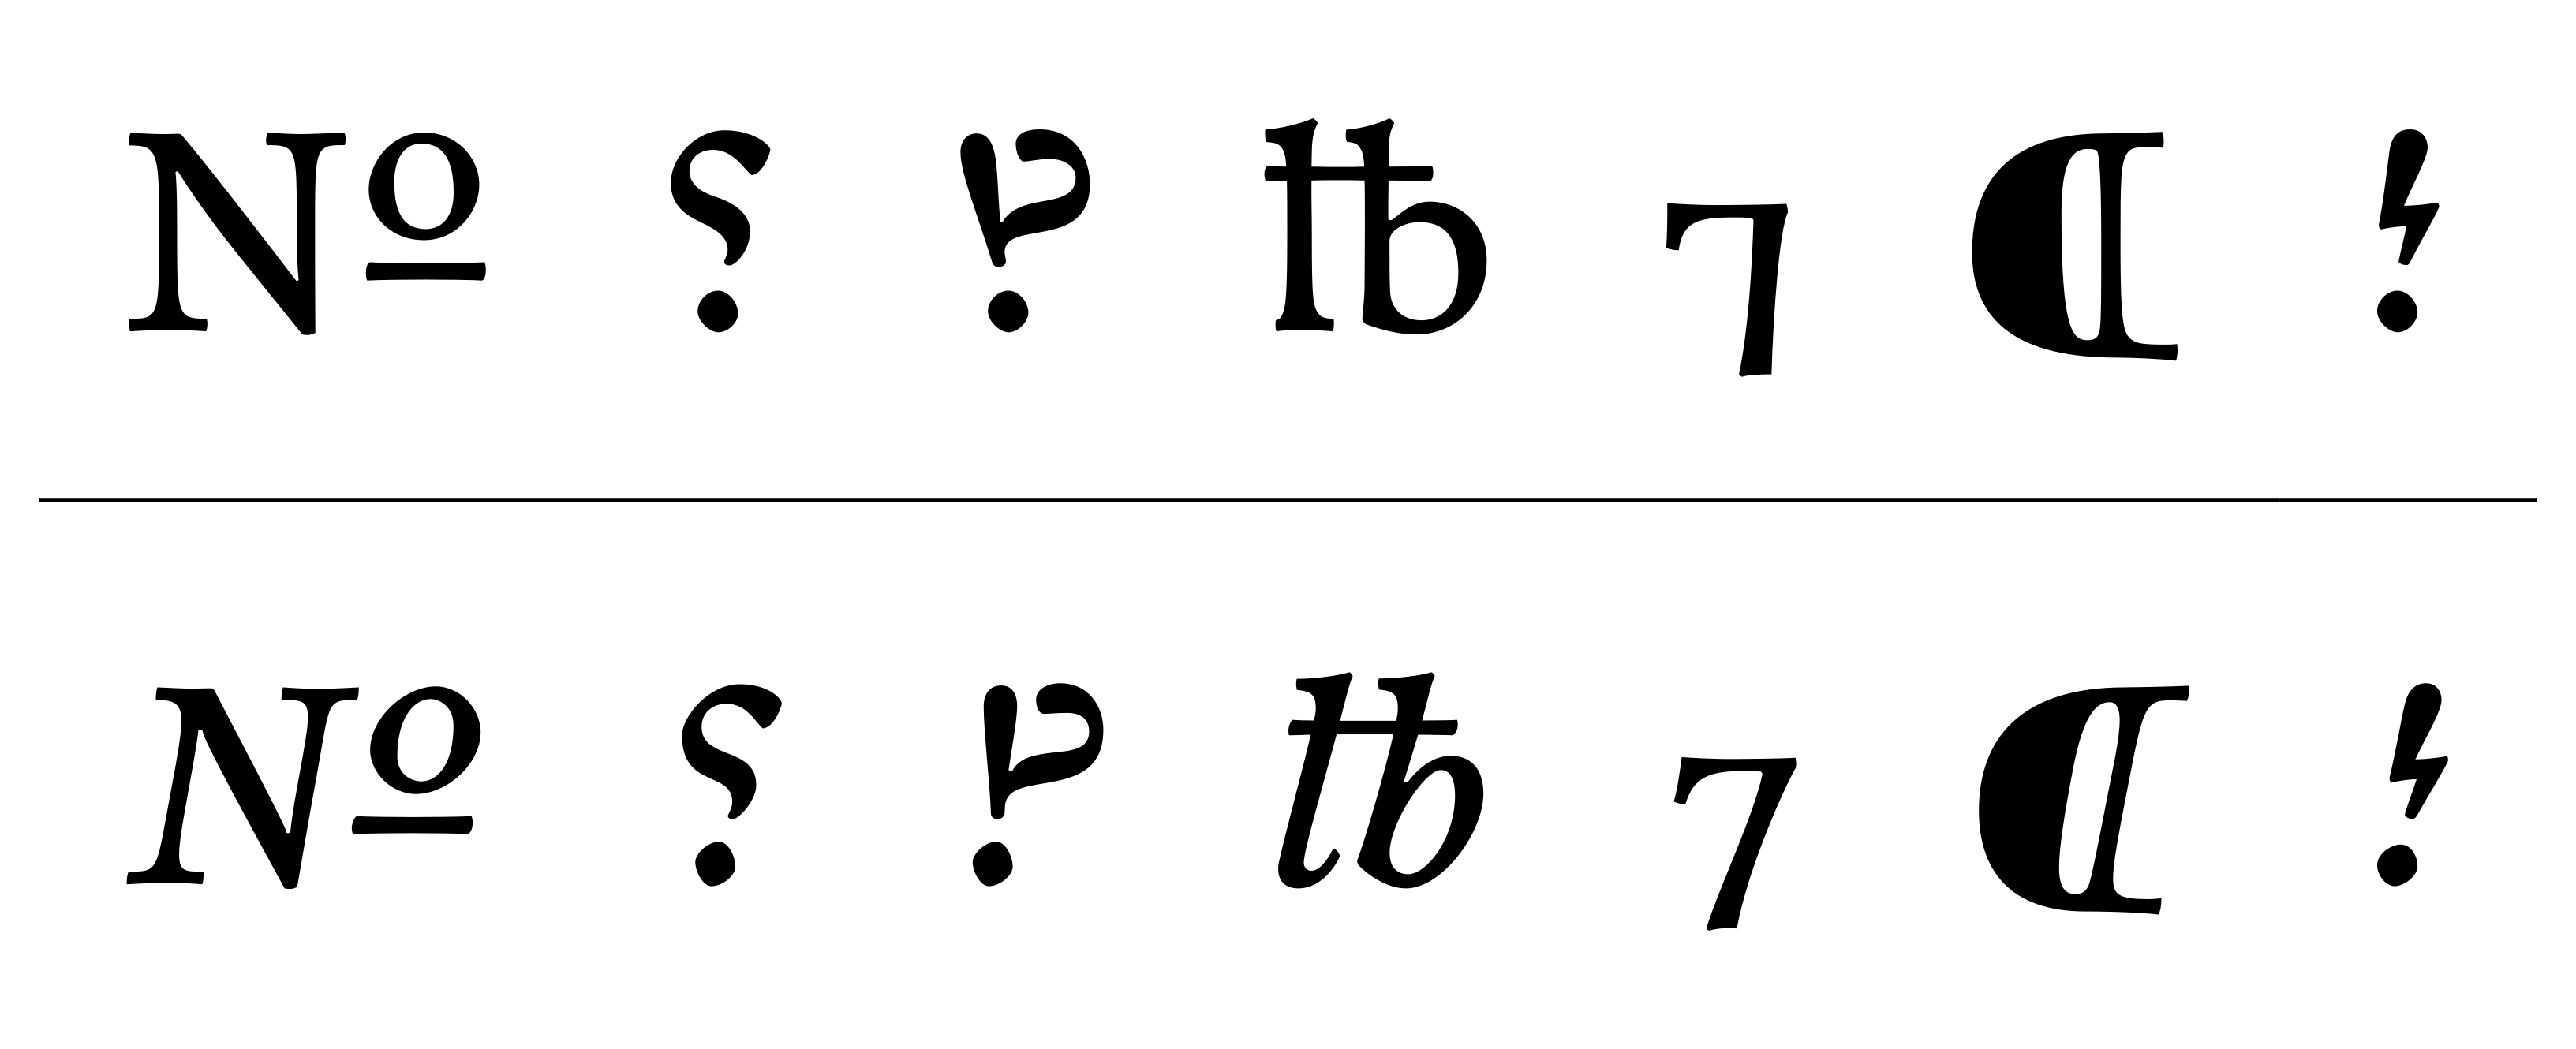 Custom symbols from Monokrom's Satyr typeface, as designed by Sindre Bremnes.